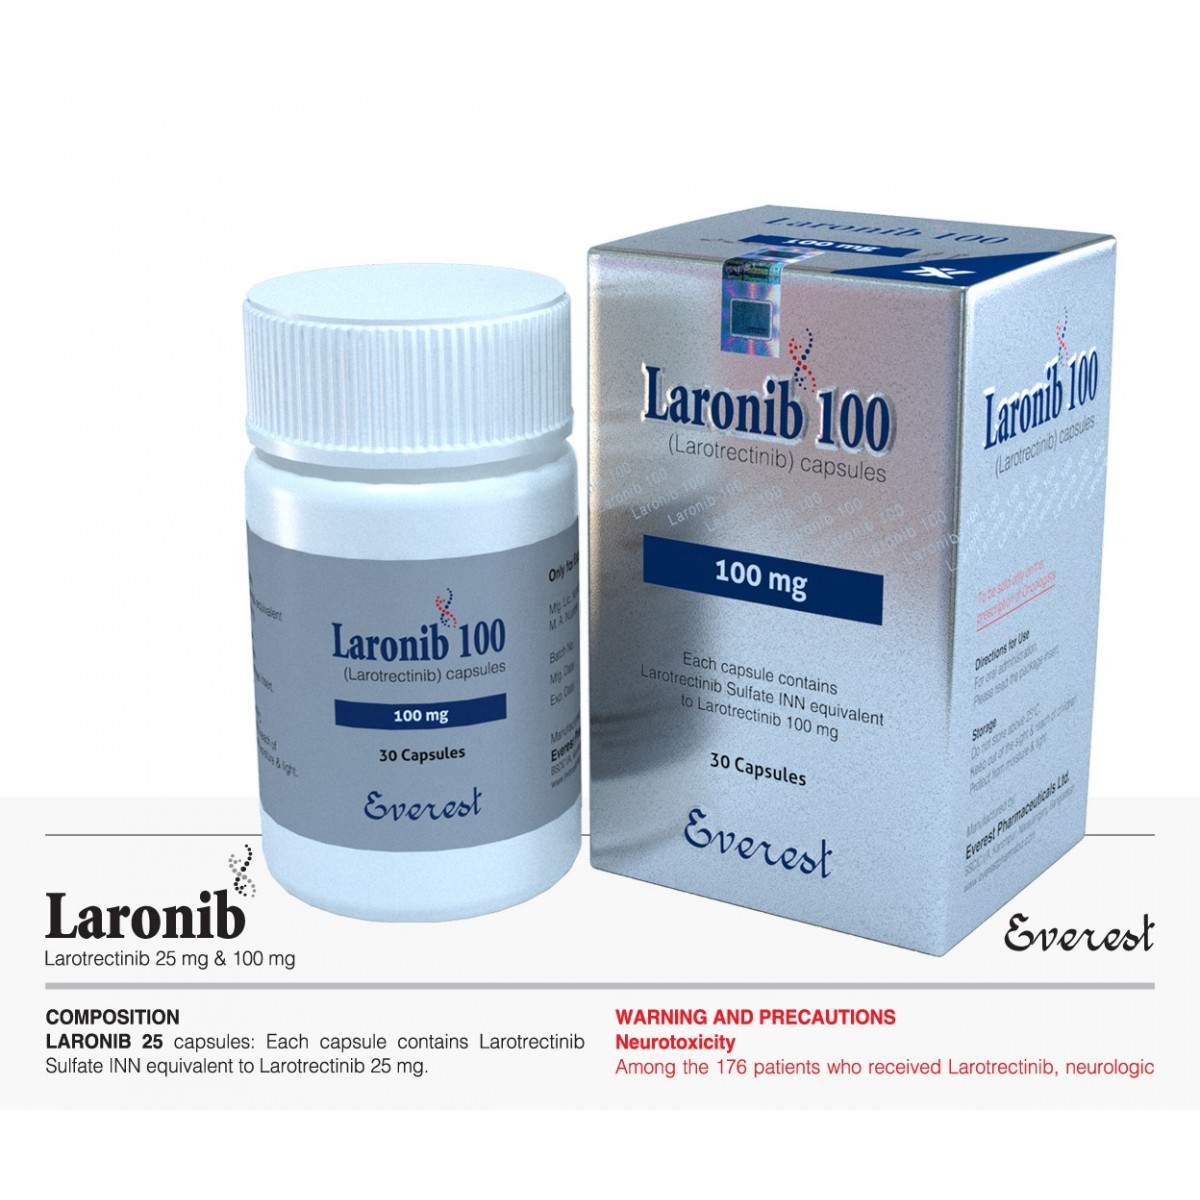 Larotrectinib Laronib 100mg (Everest)  拉罗替尼 100毫克 胶囊